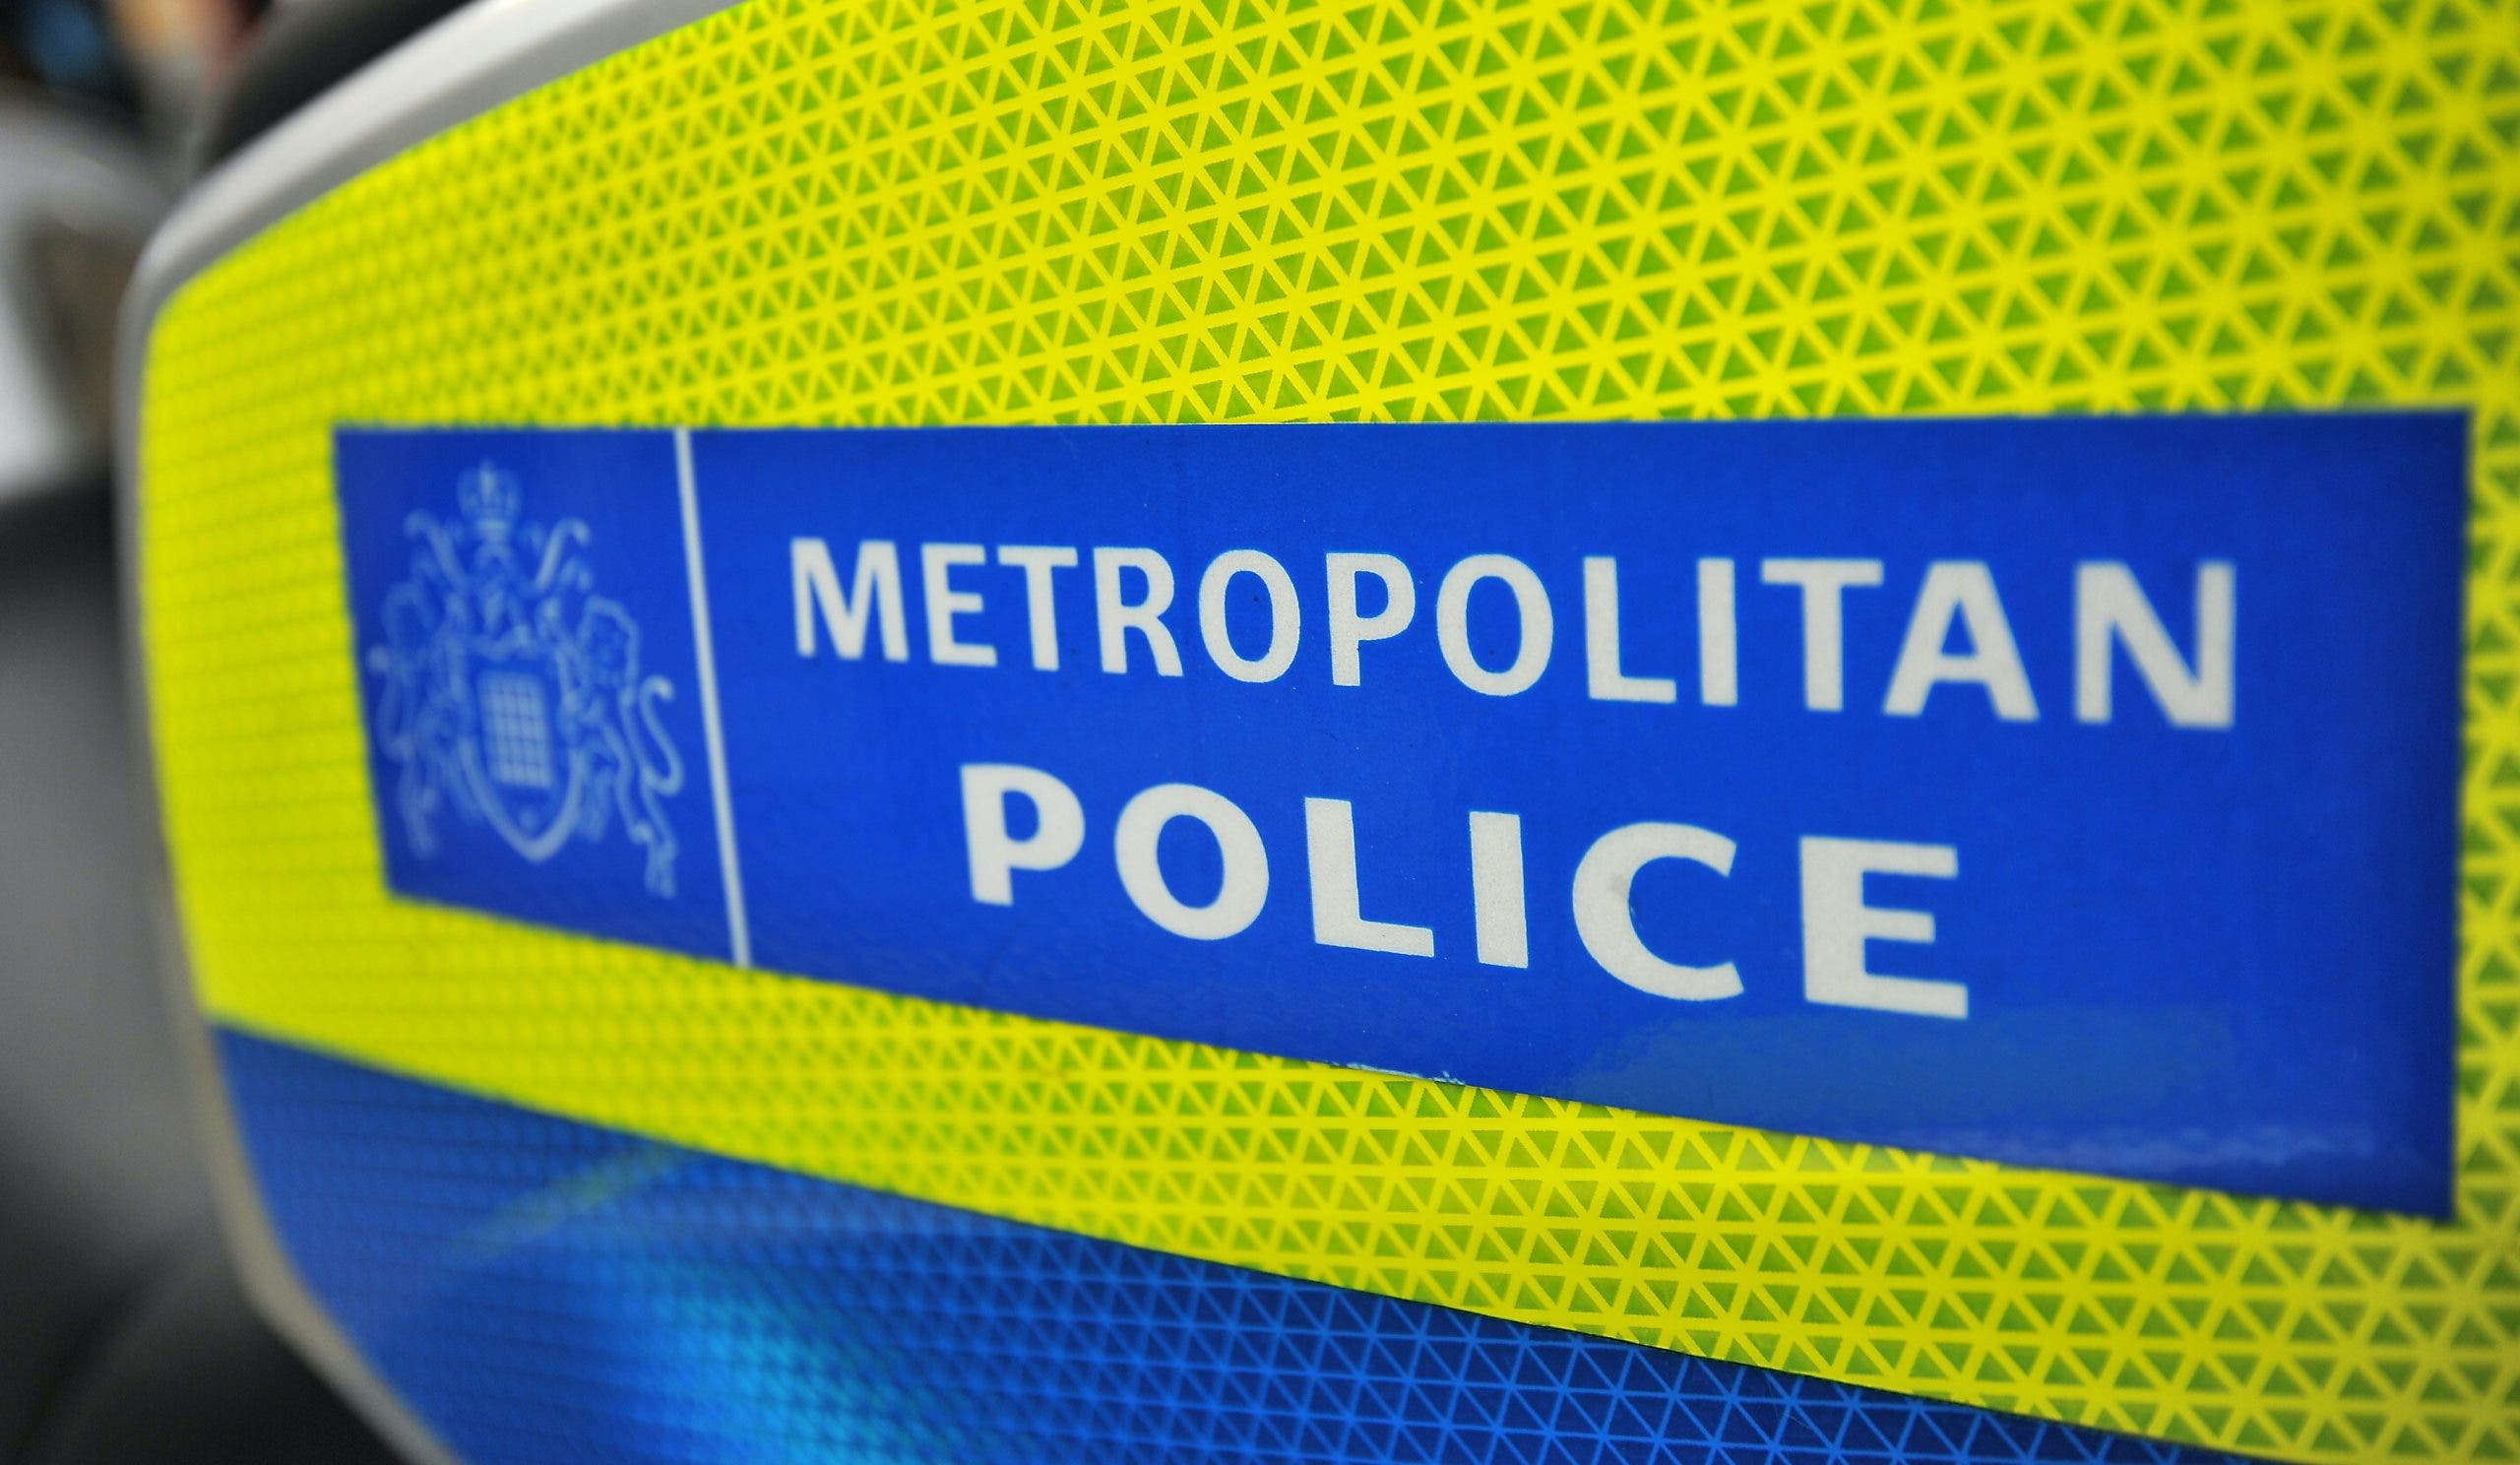 Met Police urged to withdraw 'misleading and unlawful' advice to pubs